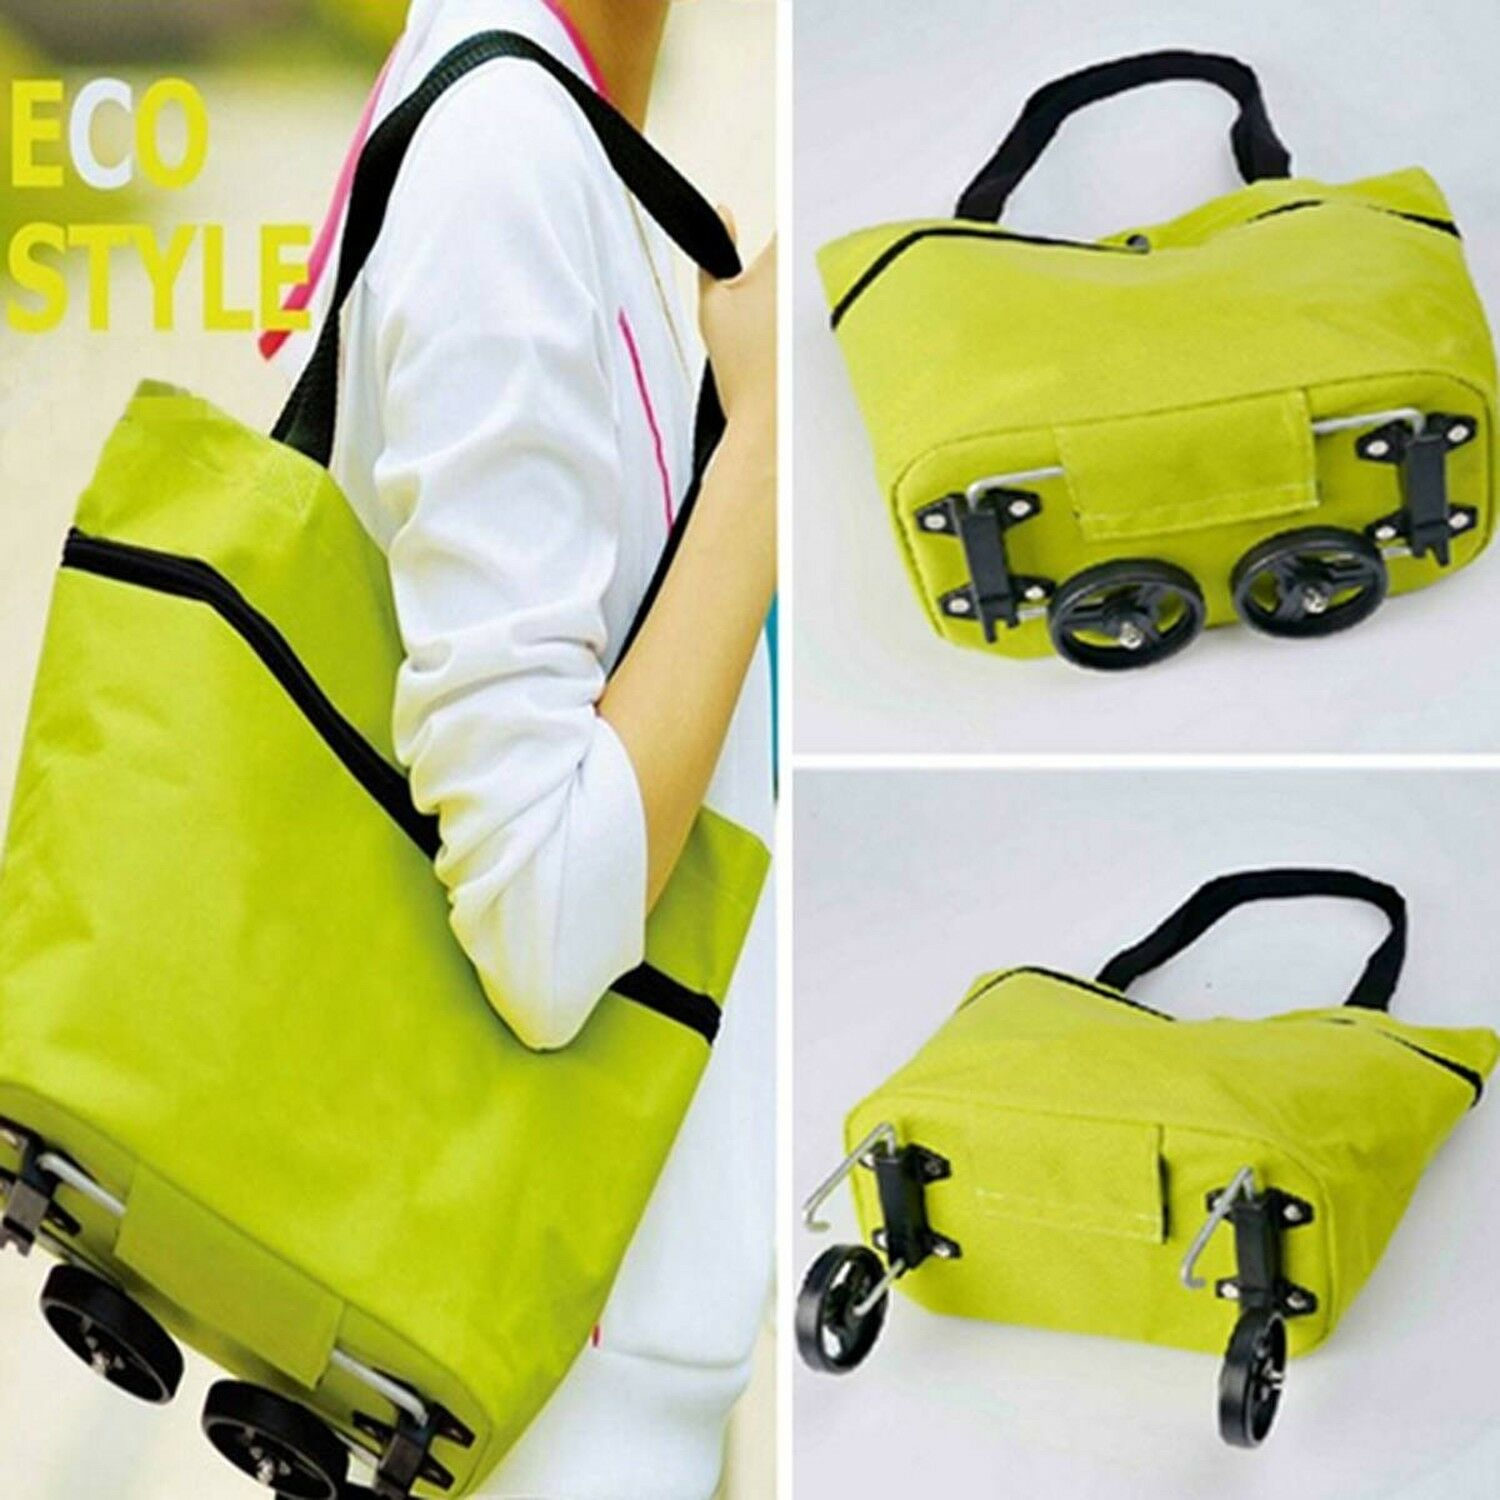 Nursing Bags On Wheels >> Details About Portable Travel Oxford Foldable Shopping Trolley Bag Wheels Nursing Tote Space